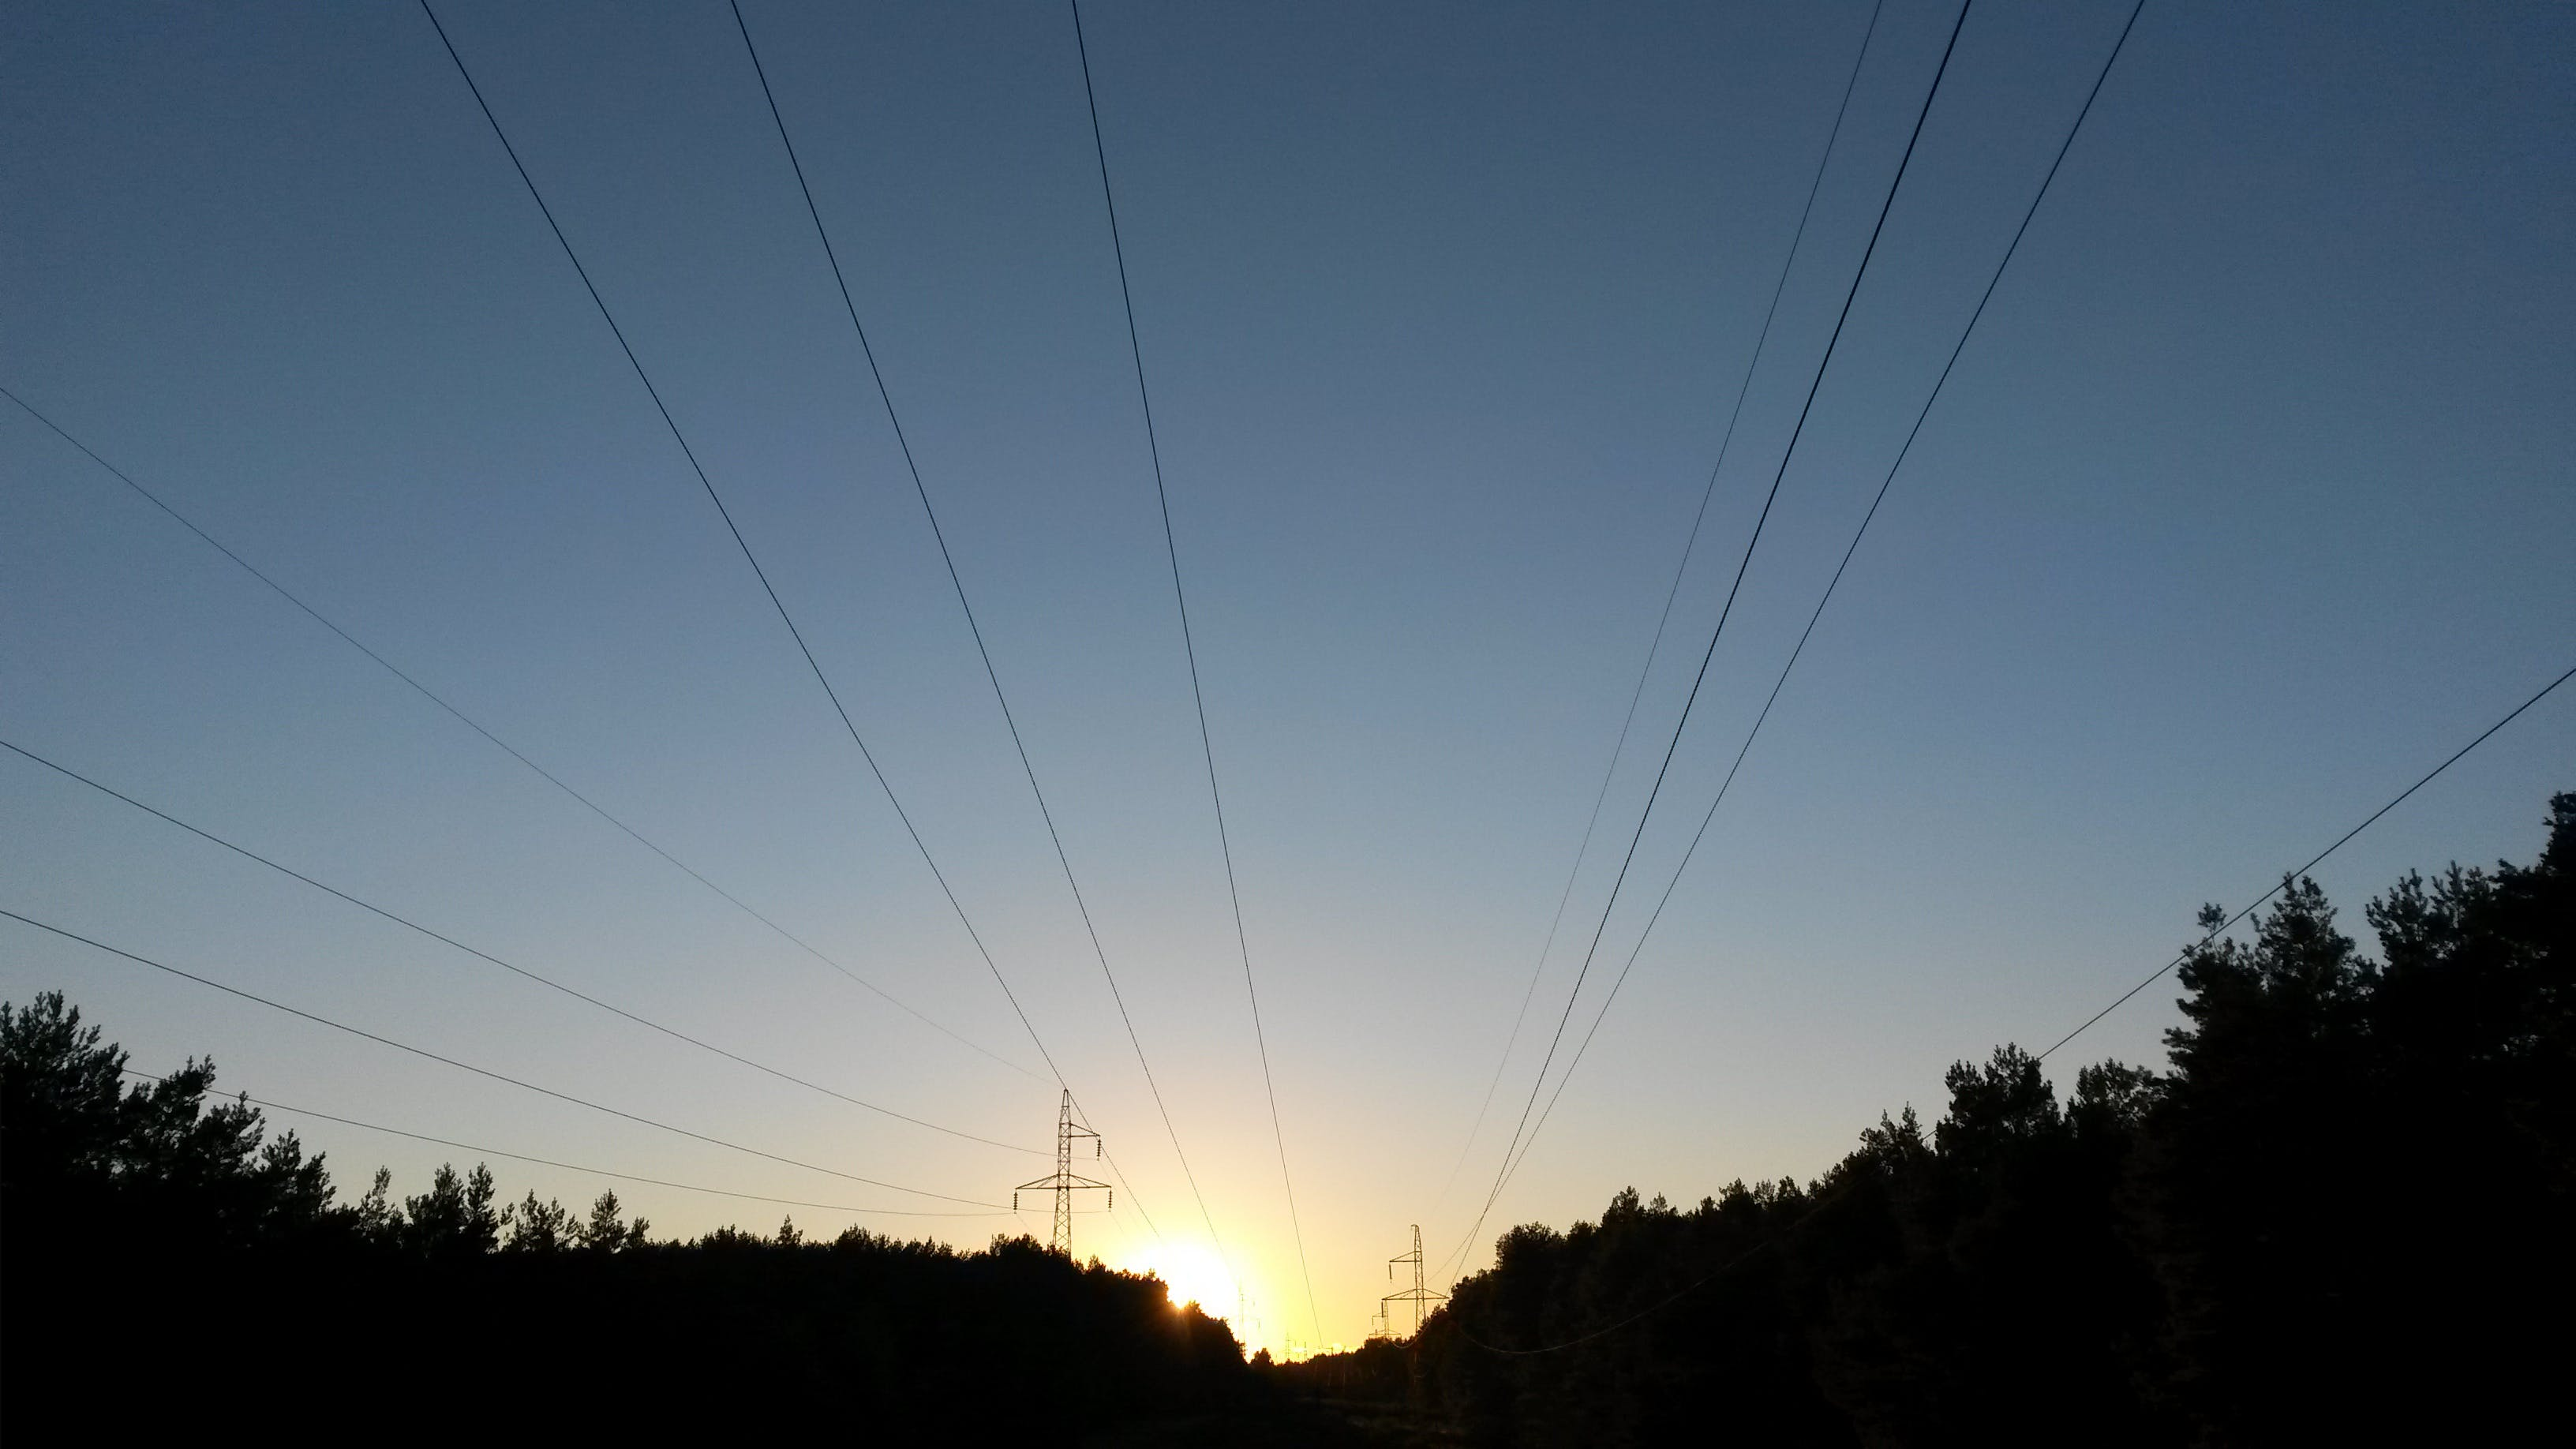 Free stock photo of sunset, electric poles